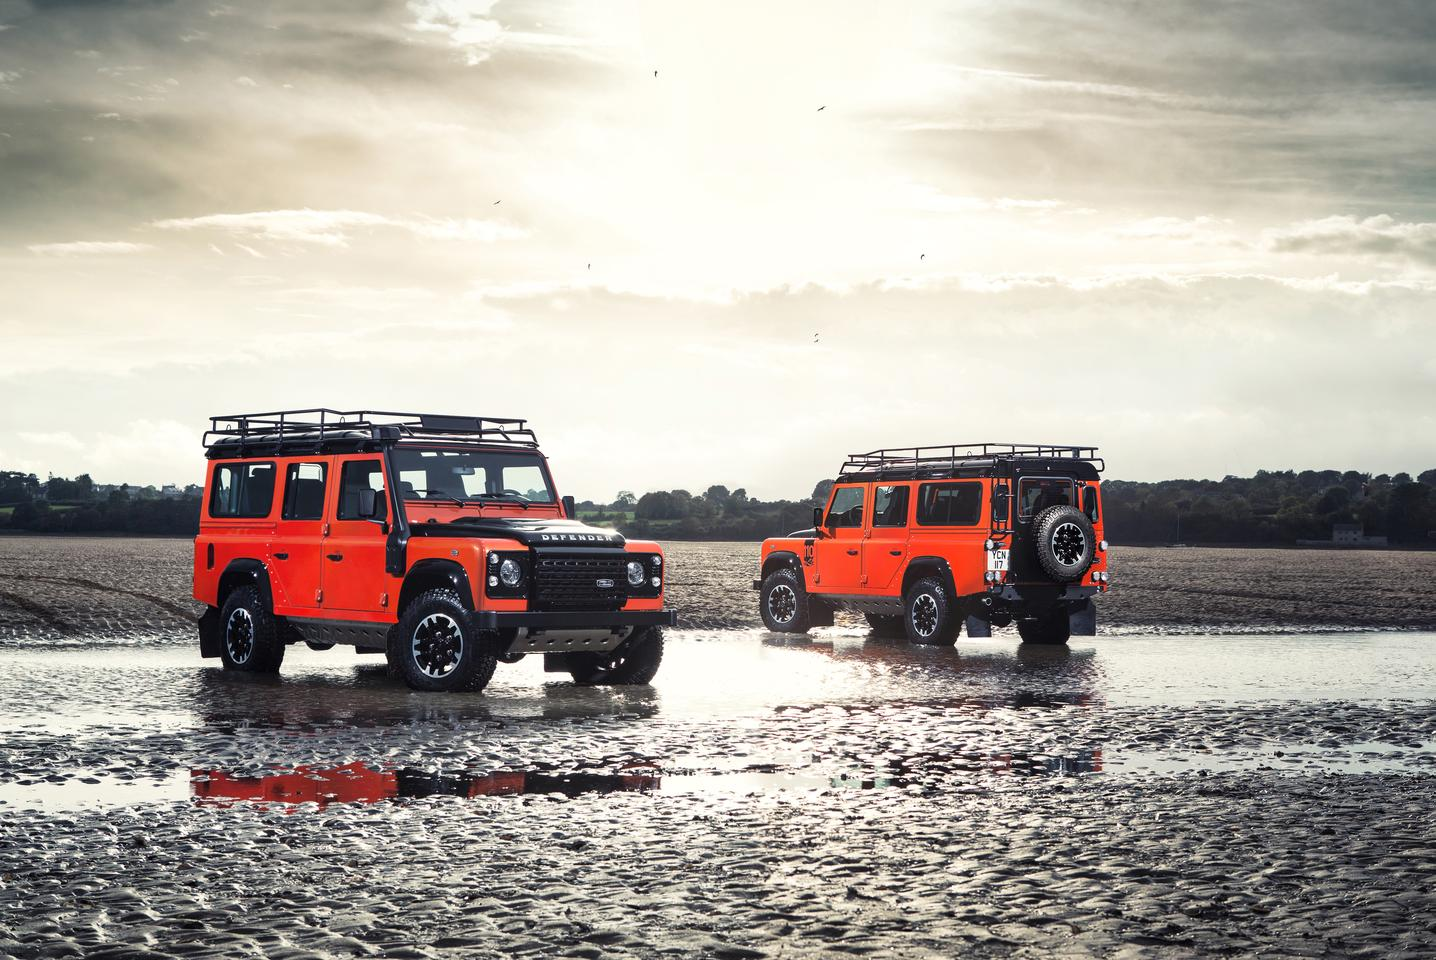 The Adventure Edition comes in buyer's choice of three colors, including Phoenix Orange